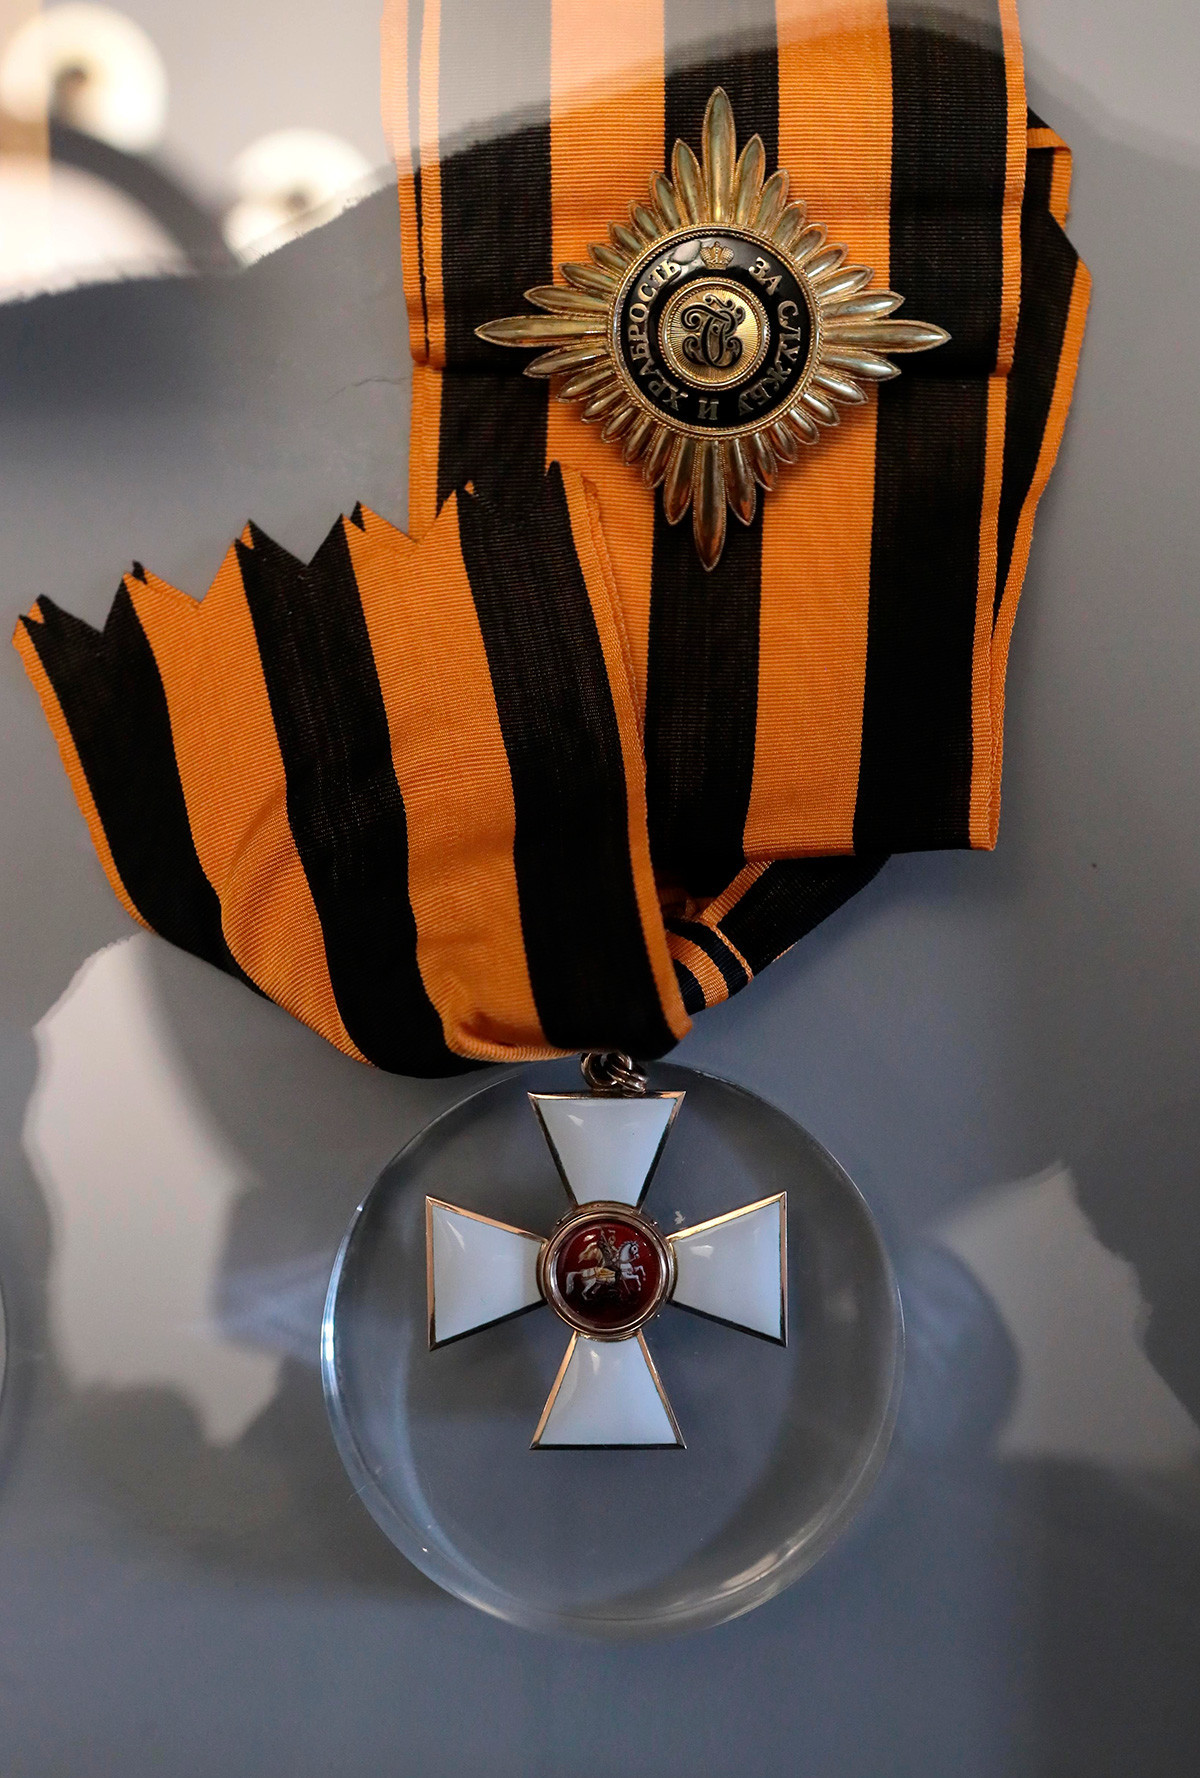 The Star and the Cross (Badge) of the Order of St. George, 1st class